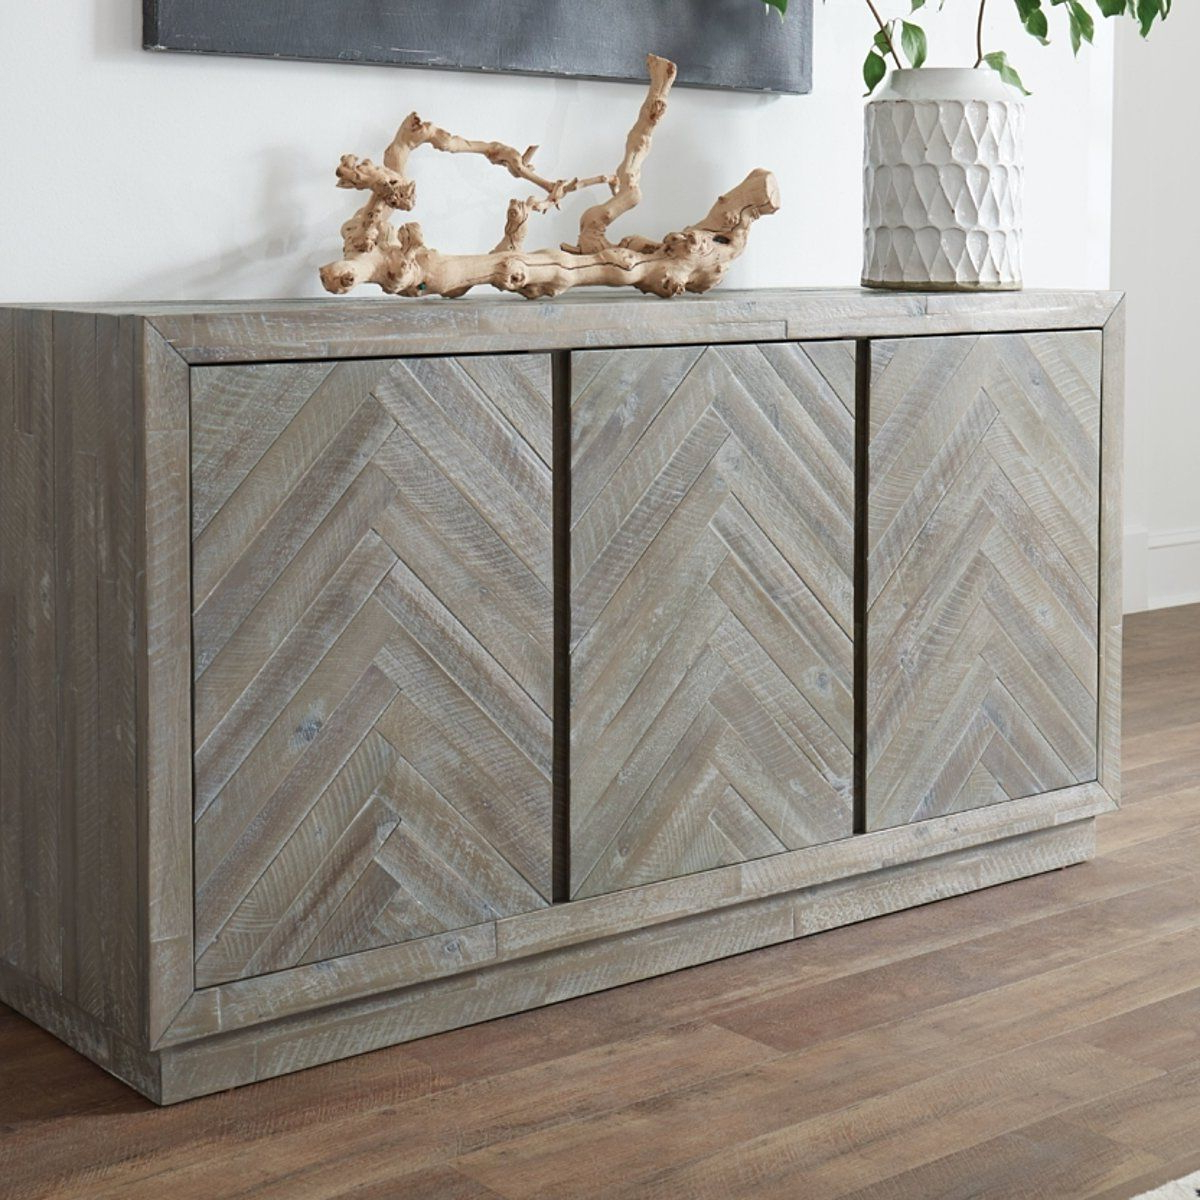 """Herringbone Pattern Wooden Sideboard With Three Door Intended For Most Up To Date Herringbone 48"""" Wide Buffet Tables (View 5 of 20)"""